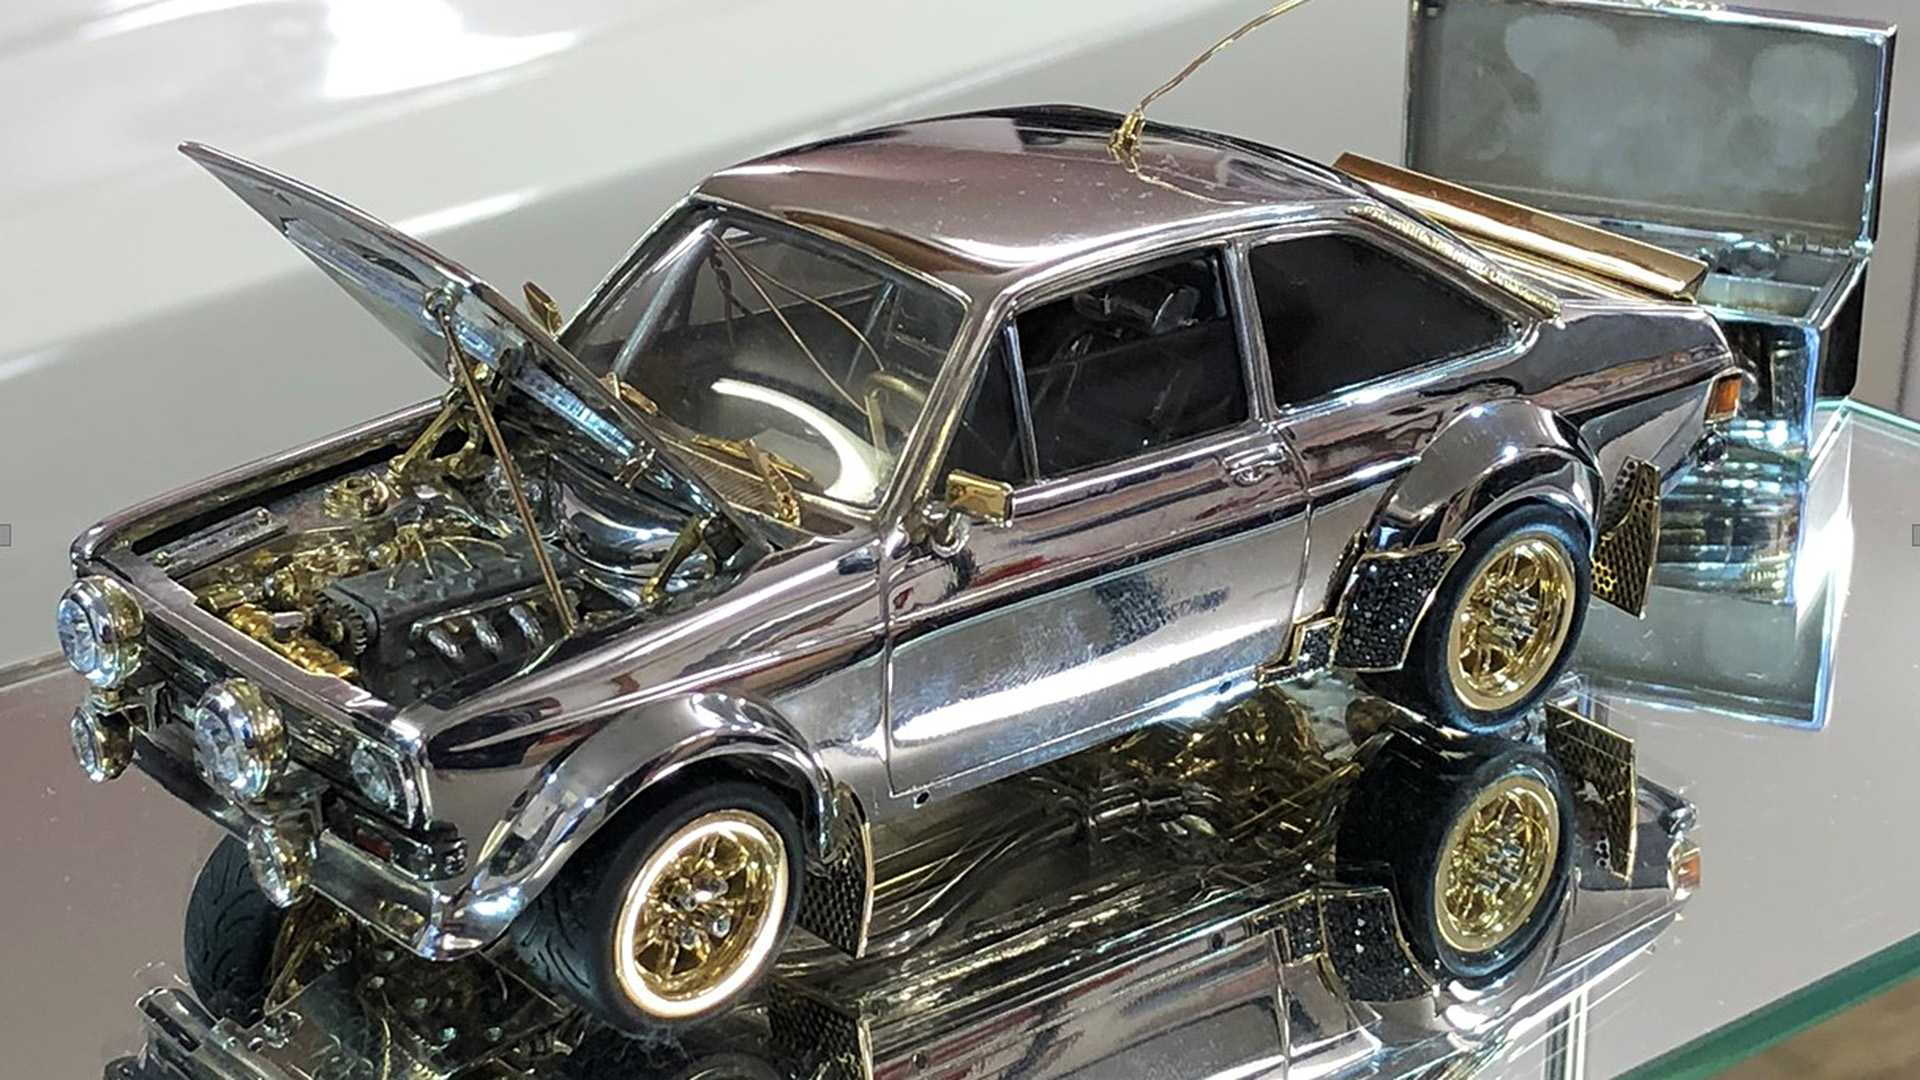 Ford Escort scale model made from precious materials